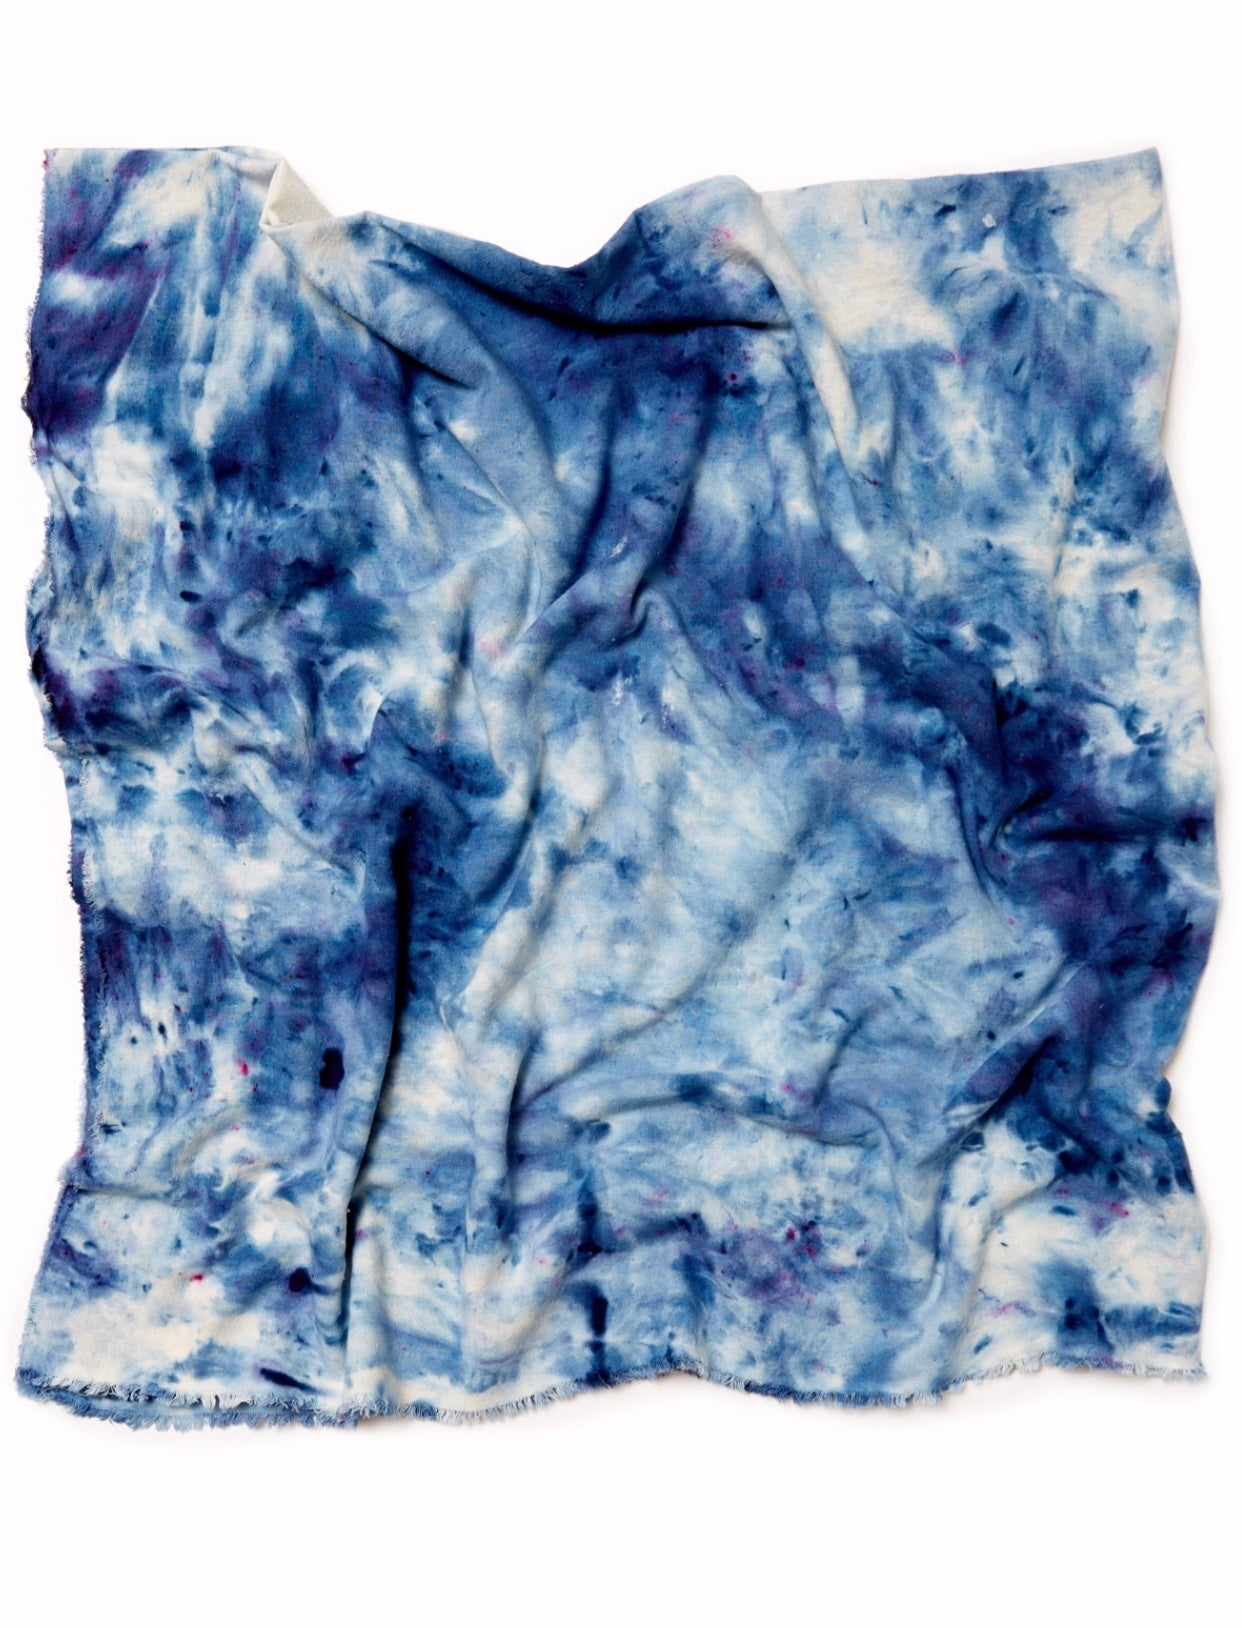 Raw Silk Scarf in Indigo - riverside tool & dye